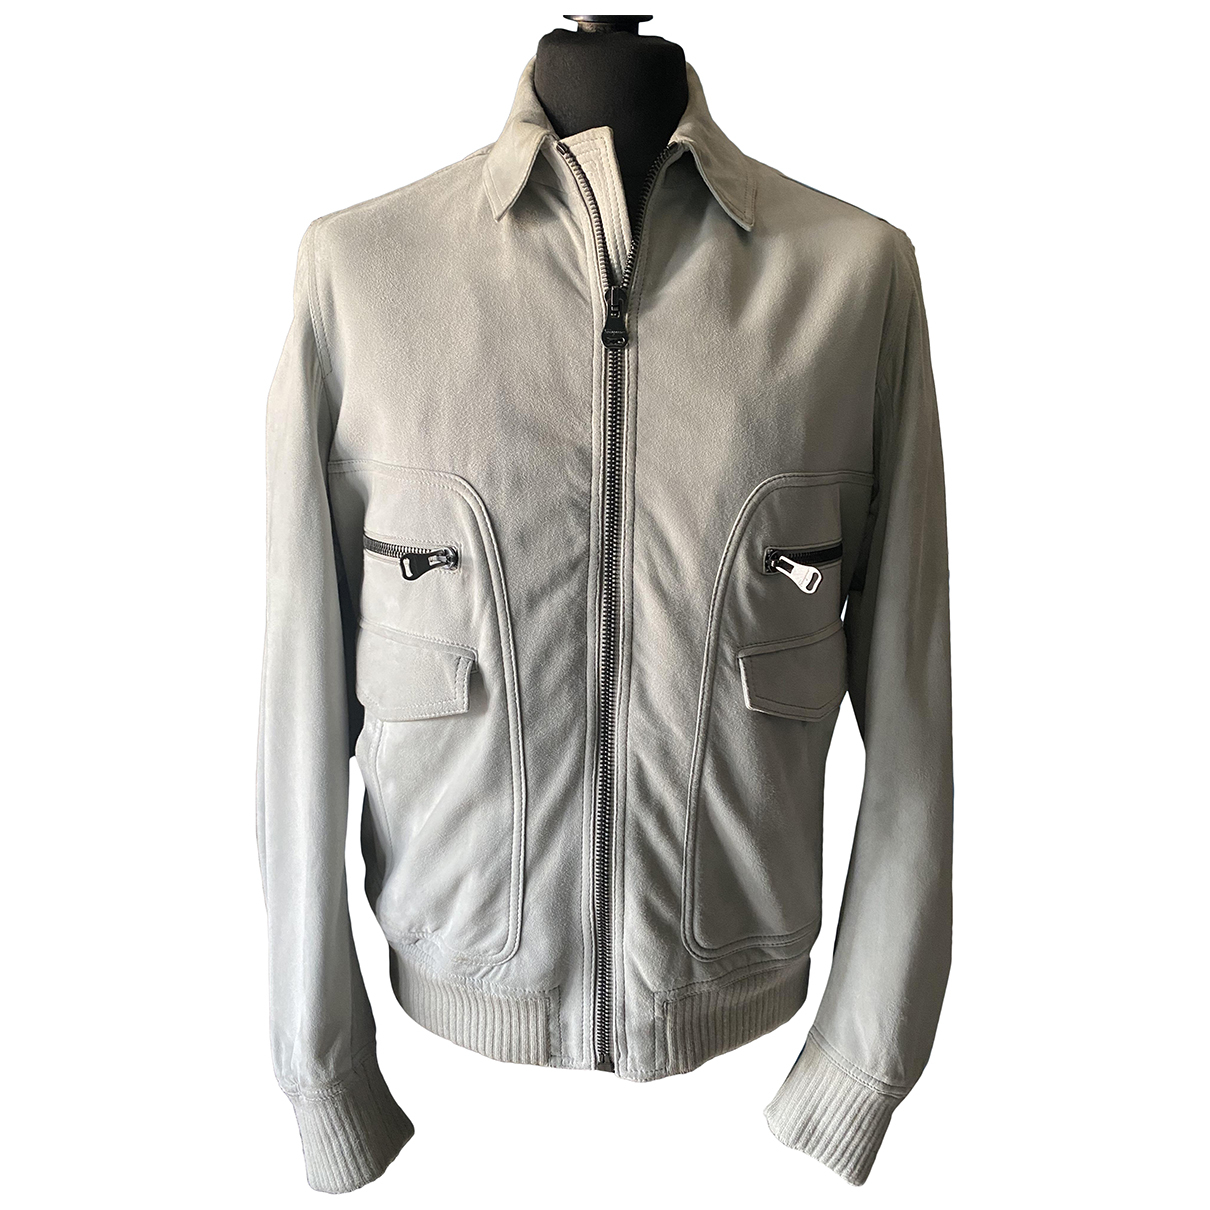 Salvatore Ferragamo N Grey Suede jacket  for Men 52 IT